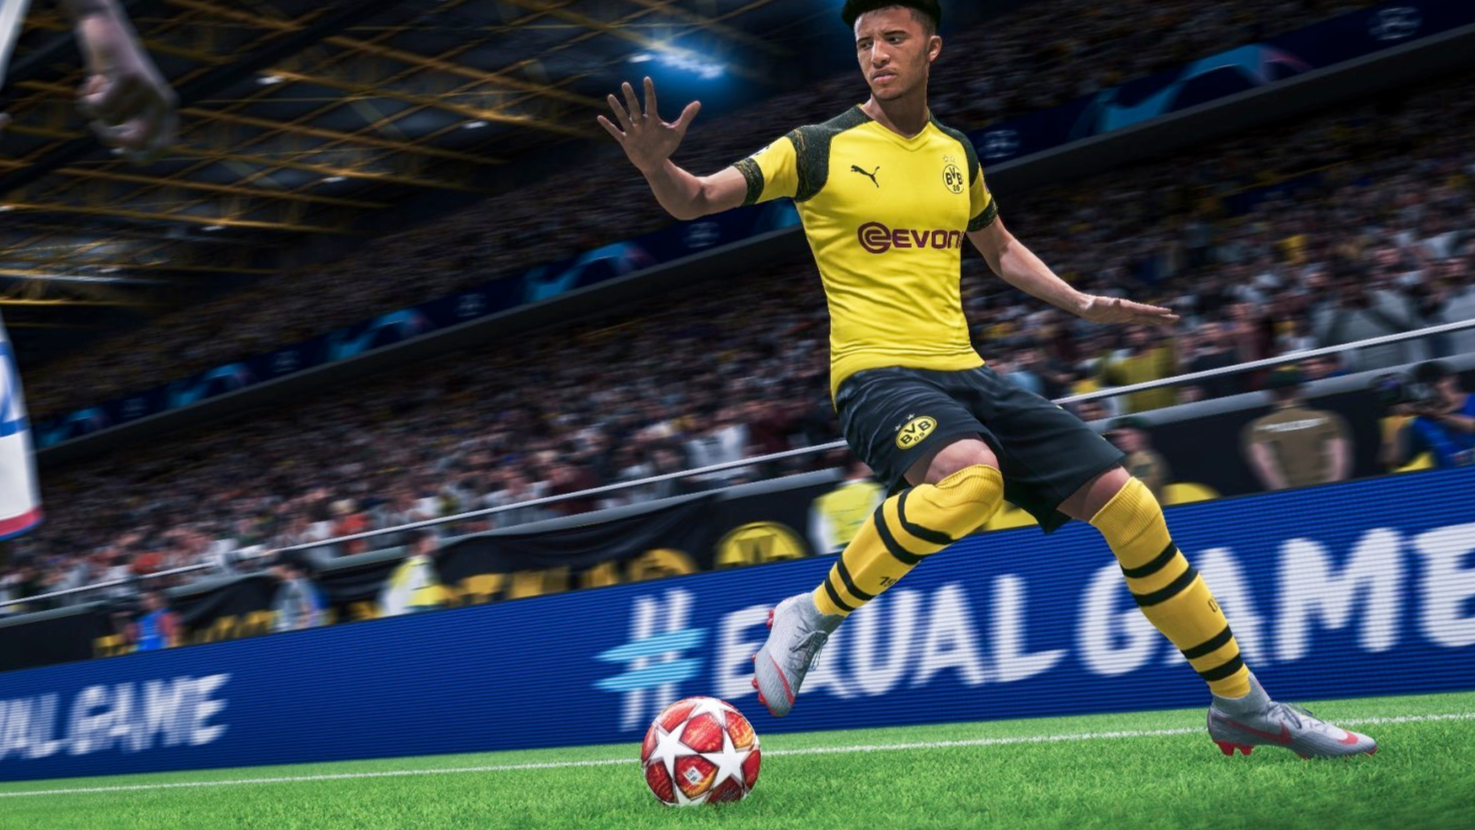 Jadon Sancho will be tricker than ever in FIFA 20 Credit: EA